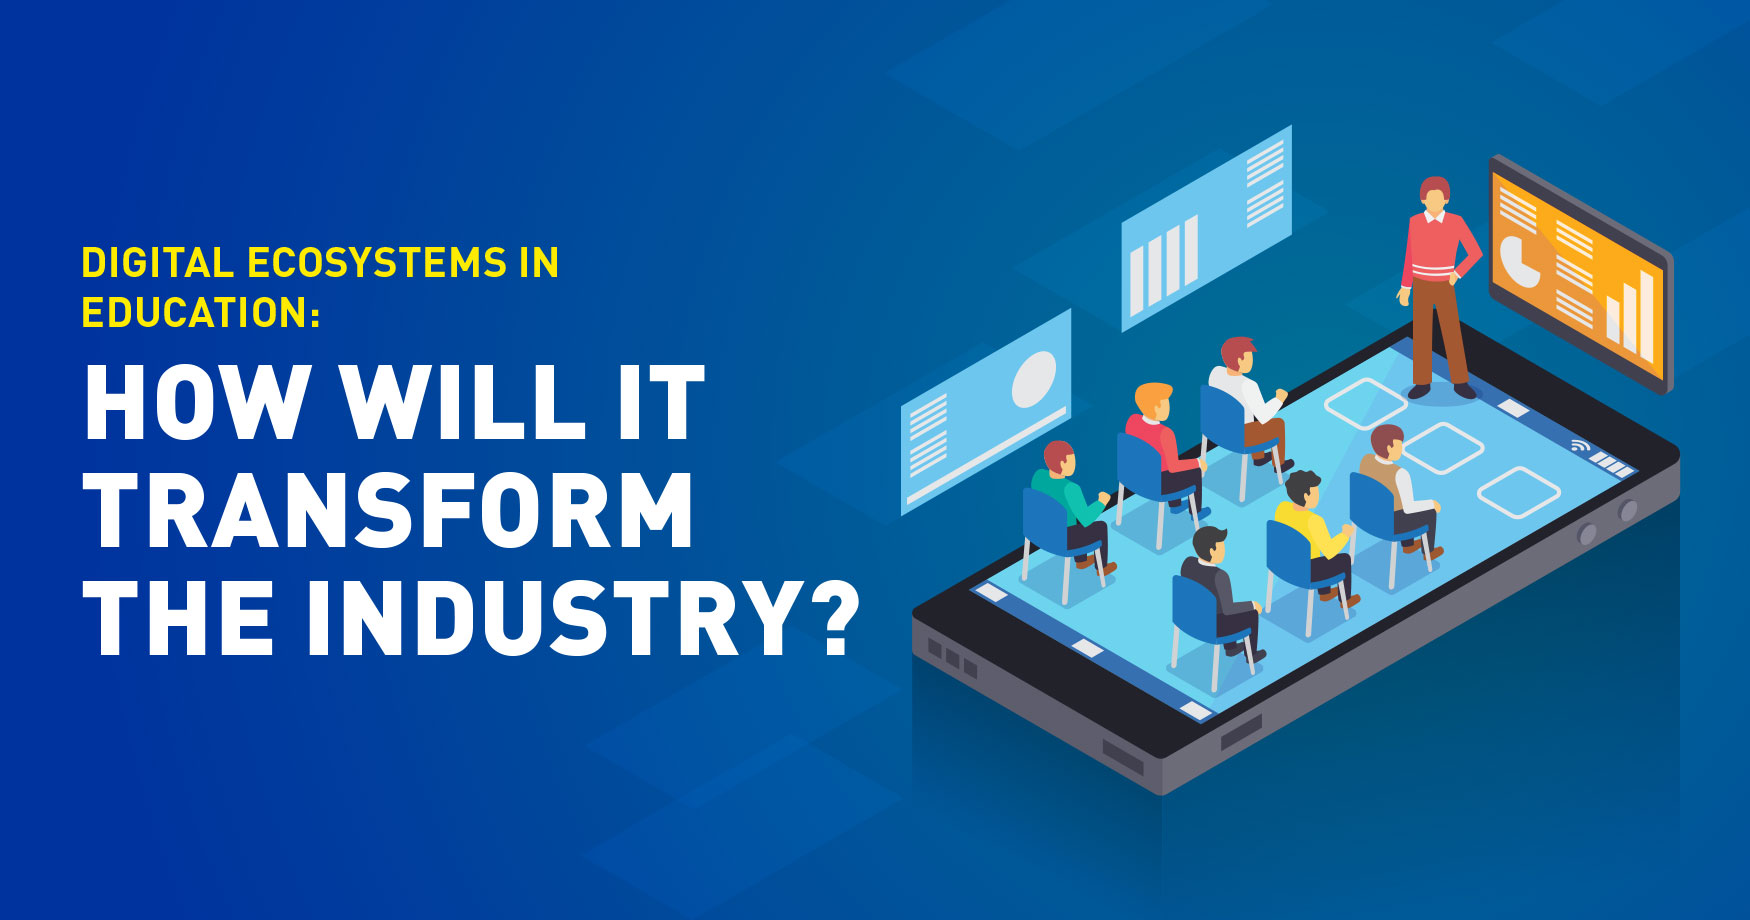 Digital Ecosystems in Education: How will it transform the Industry?